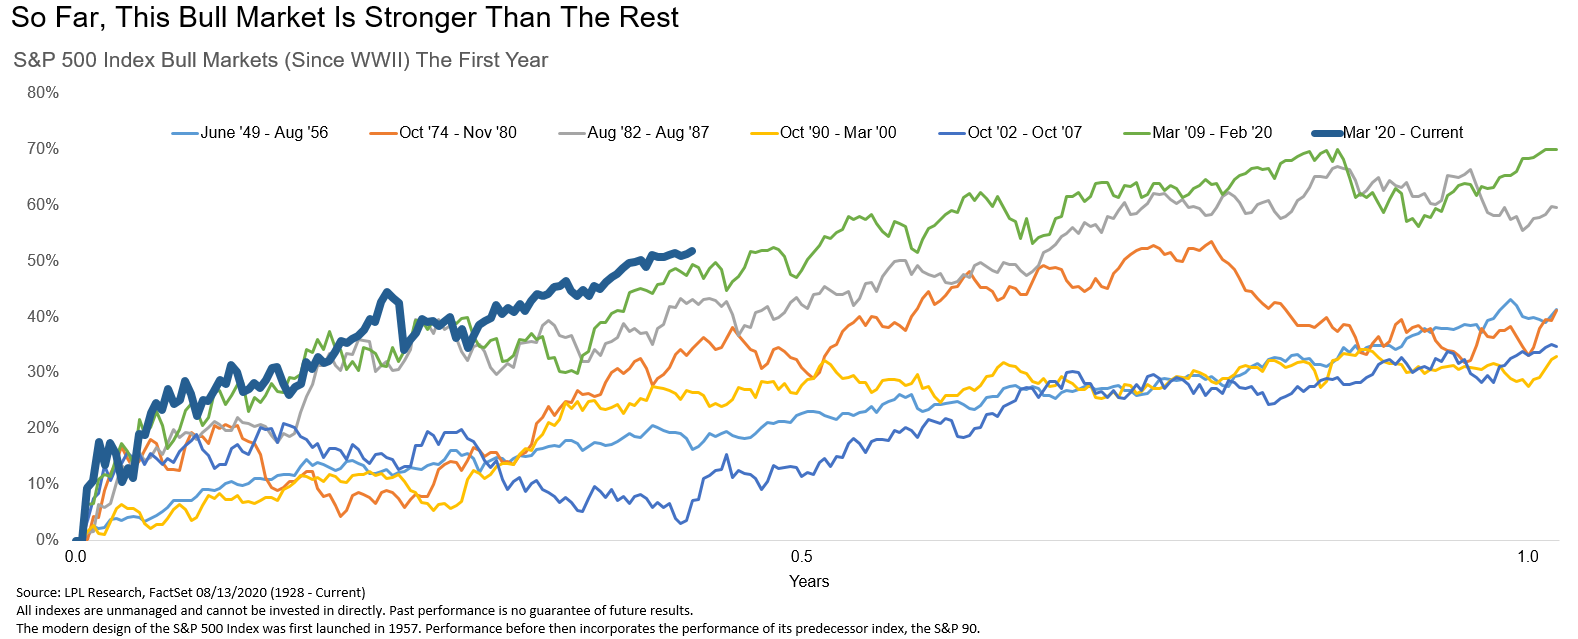 So Far This Bull Market Is Stronger Than The Rest